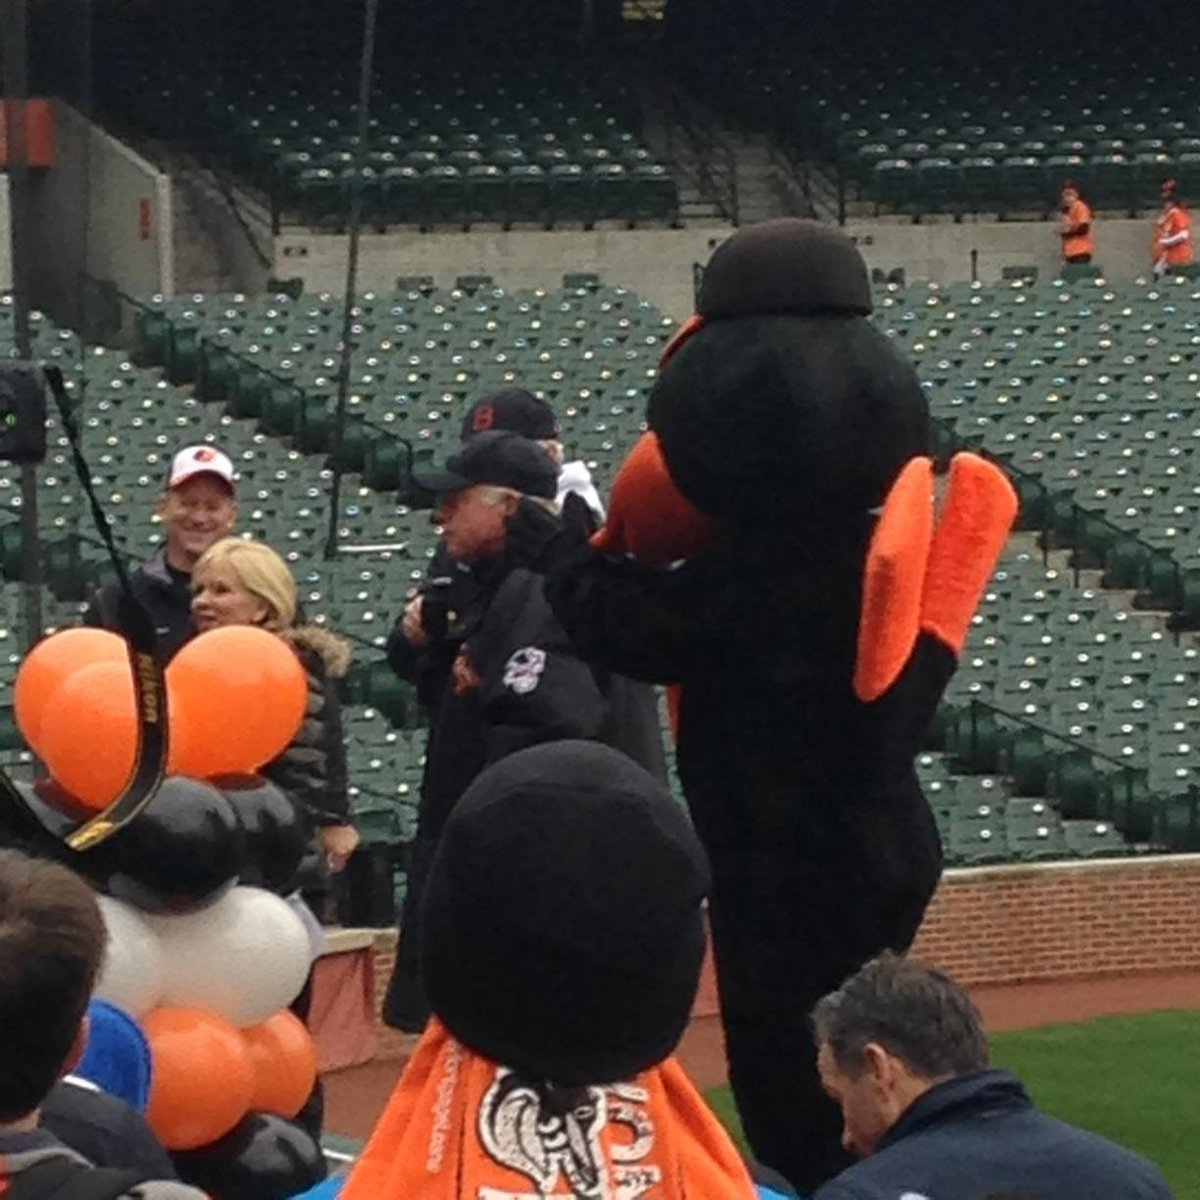 Buck announces to the crowd that he's optimistic that Nick Markakis will resign with the Orioles. http://t.co/7kAiHWVoCv